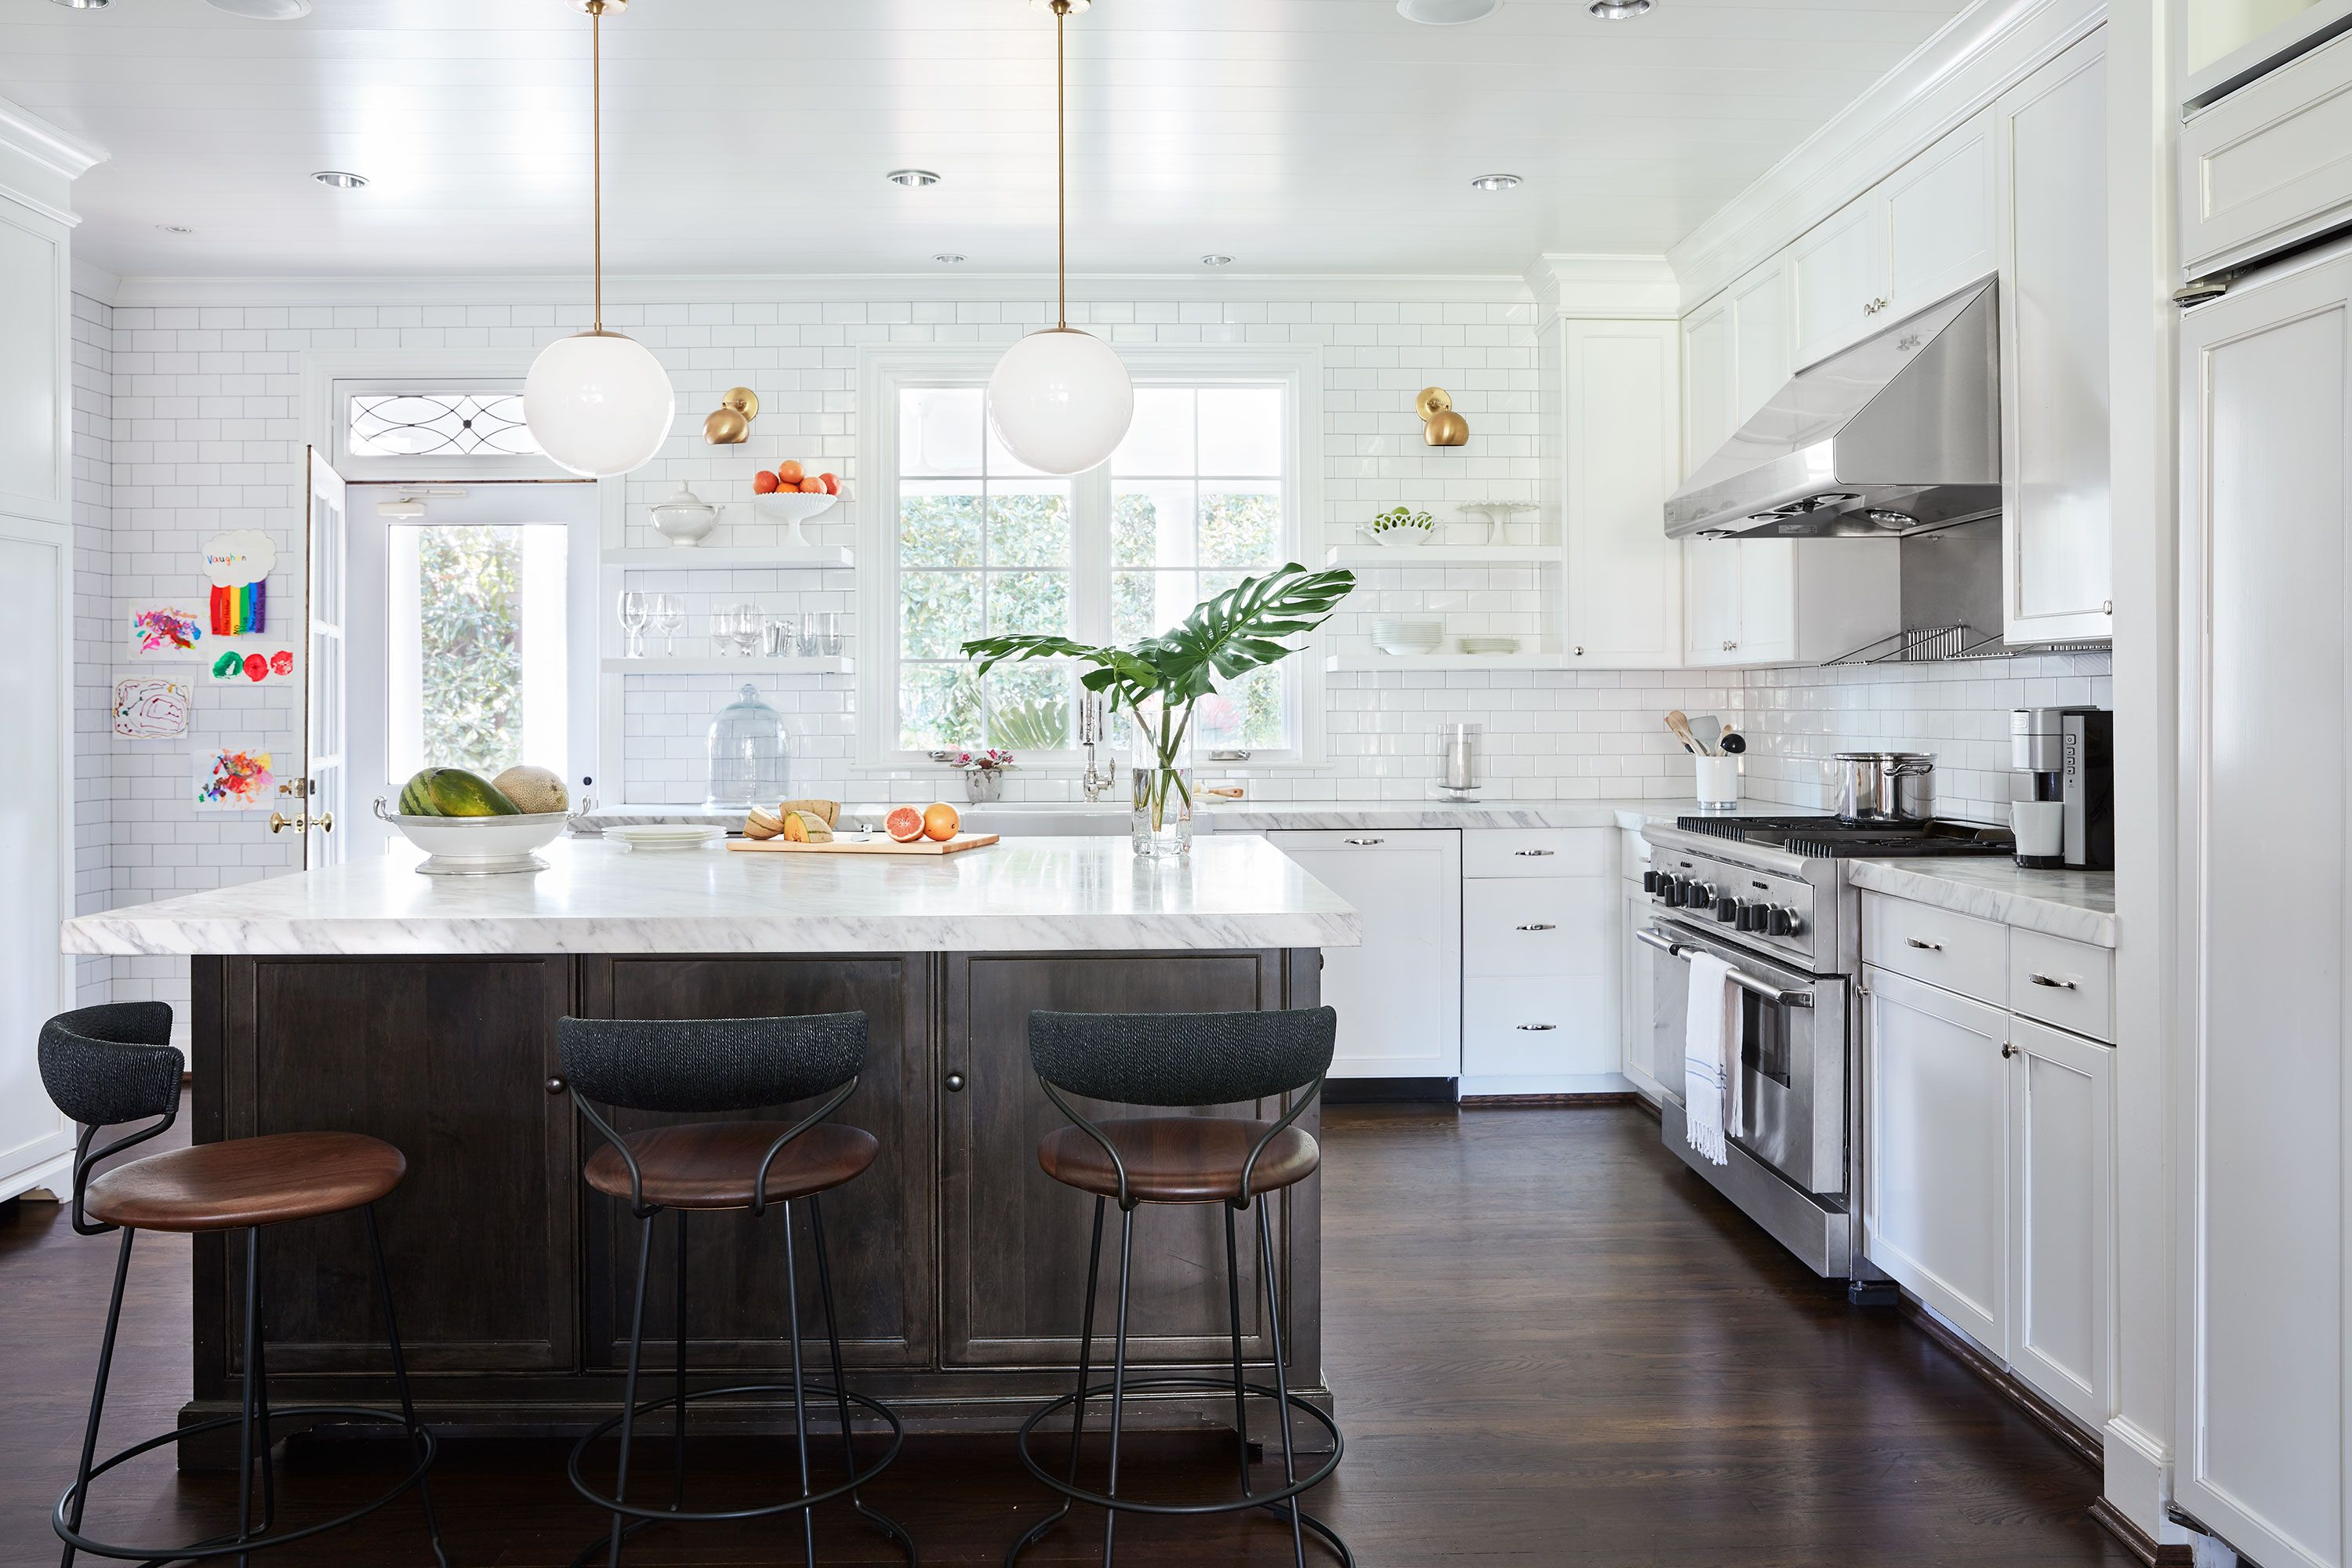 80 Kitchen Design Remodeling Ideas Pictures Of Beautiful Kitchens